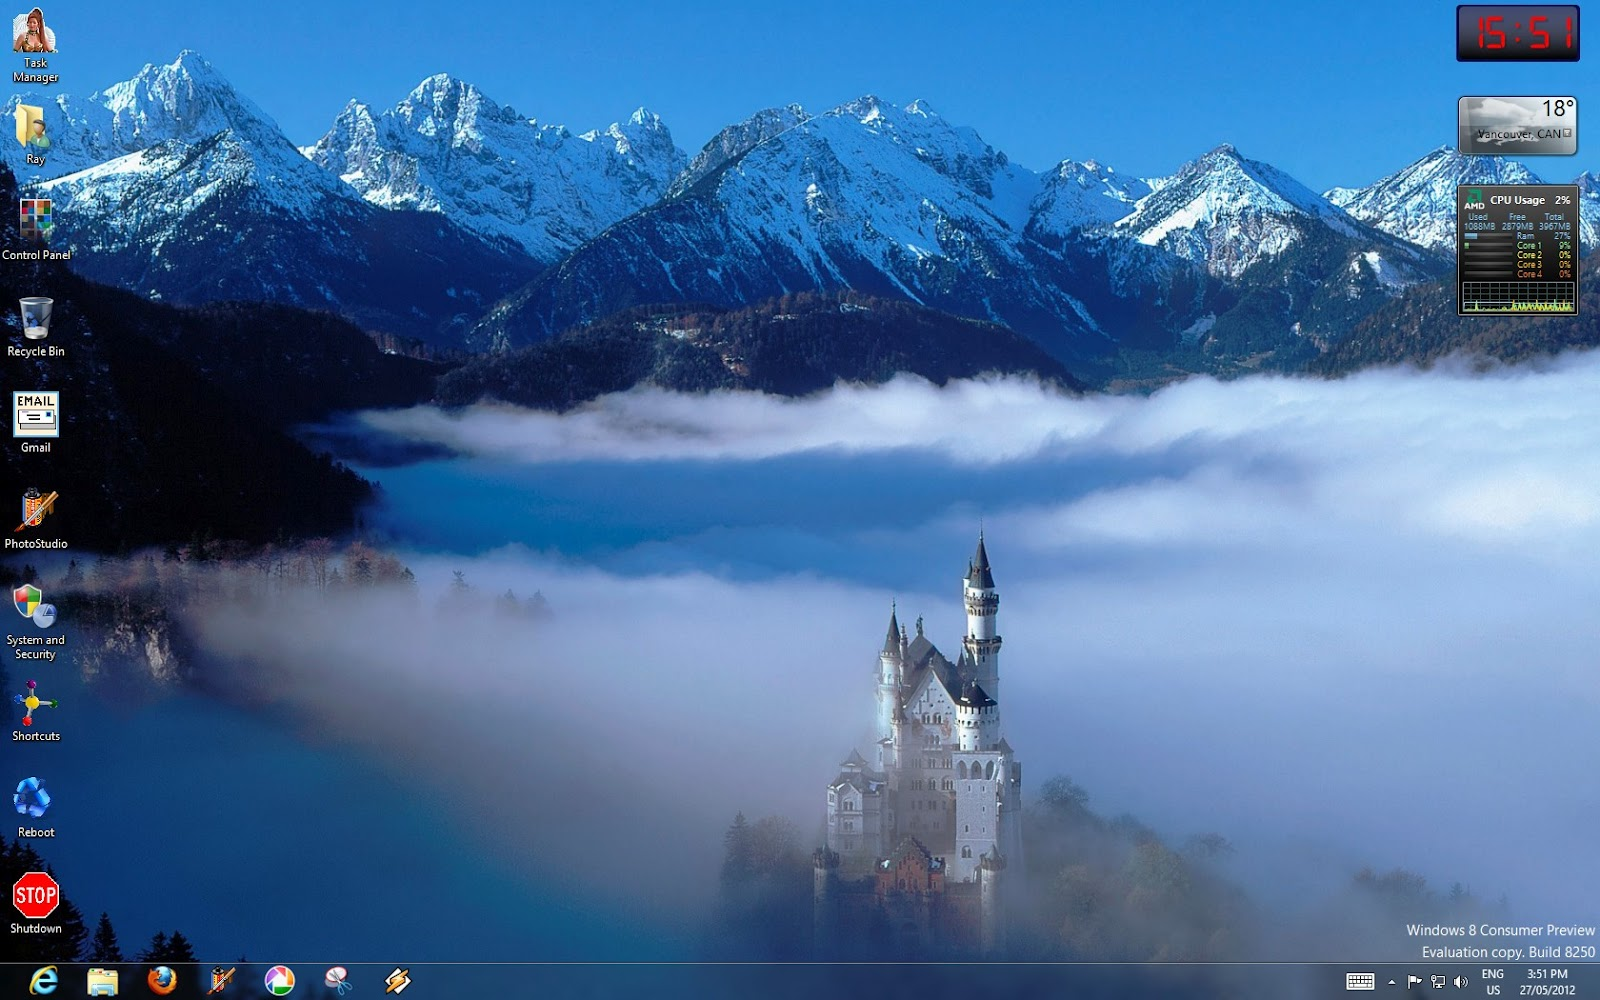 Gmail mountain theme images - I M Speaking Of Course Of The Famous Neuschwanstein Castle In Bavaria And Here Is The Shot Your Theme Should Have Used Now This Is A Castle